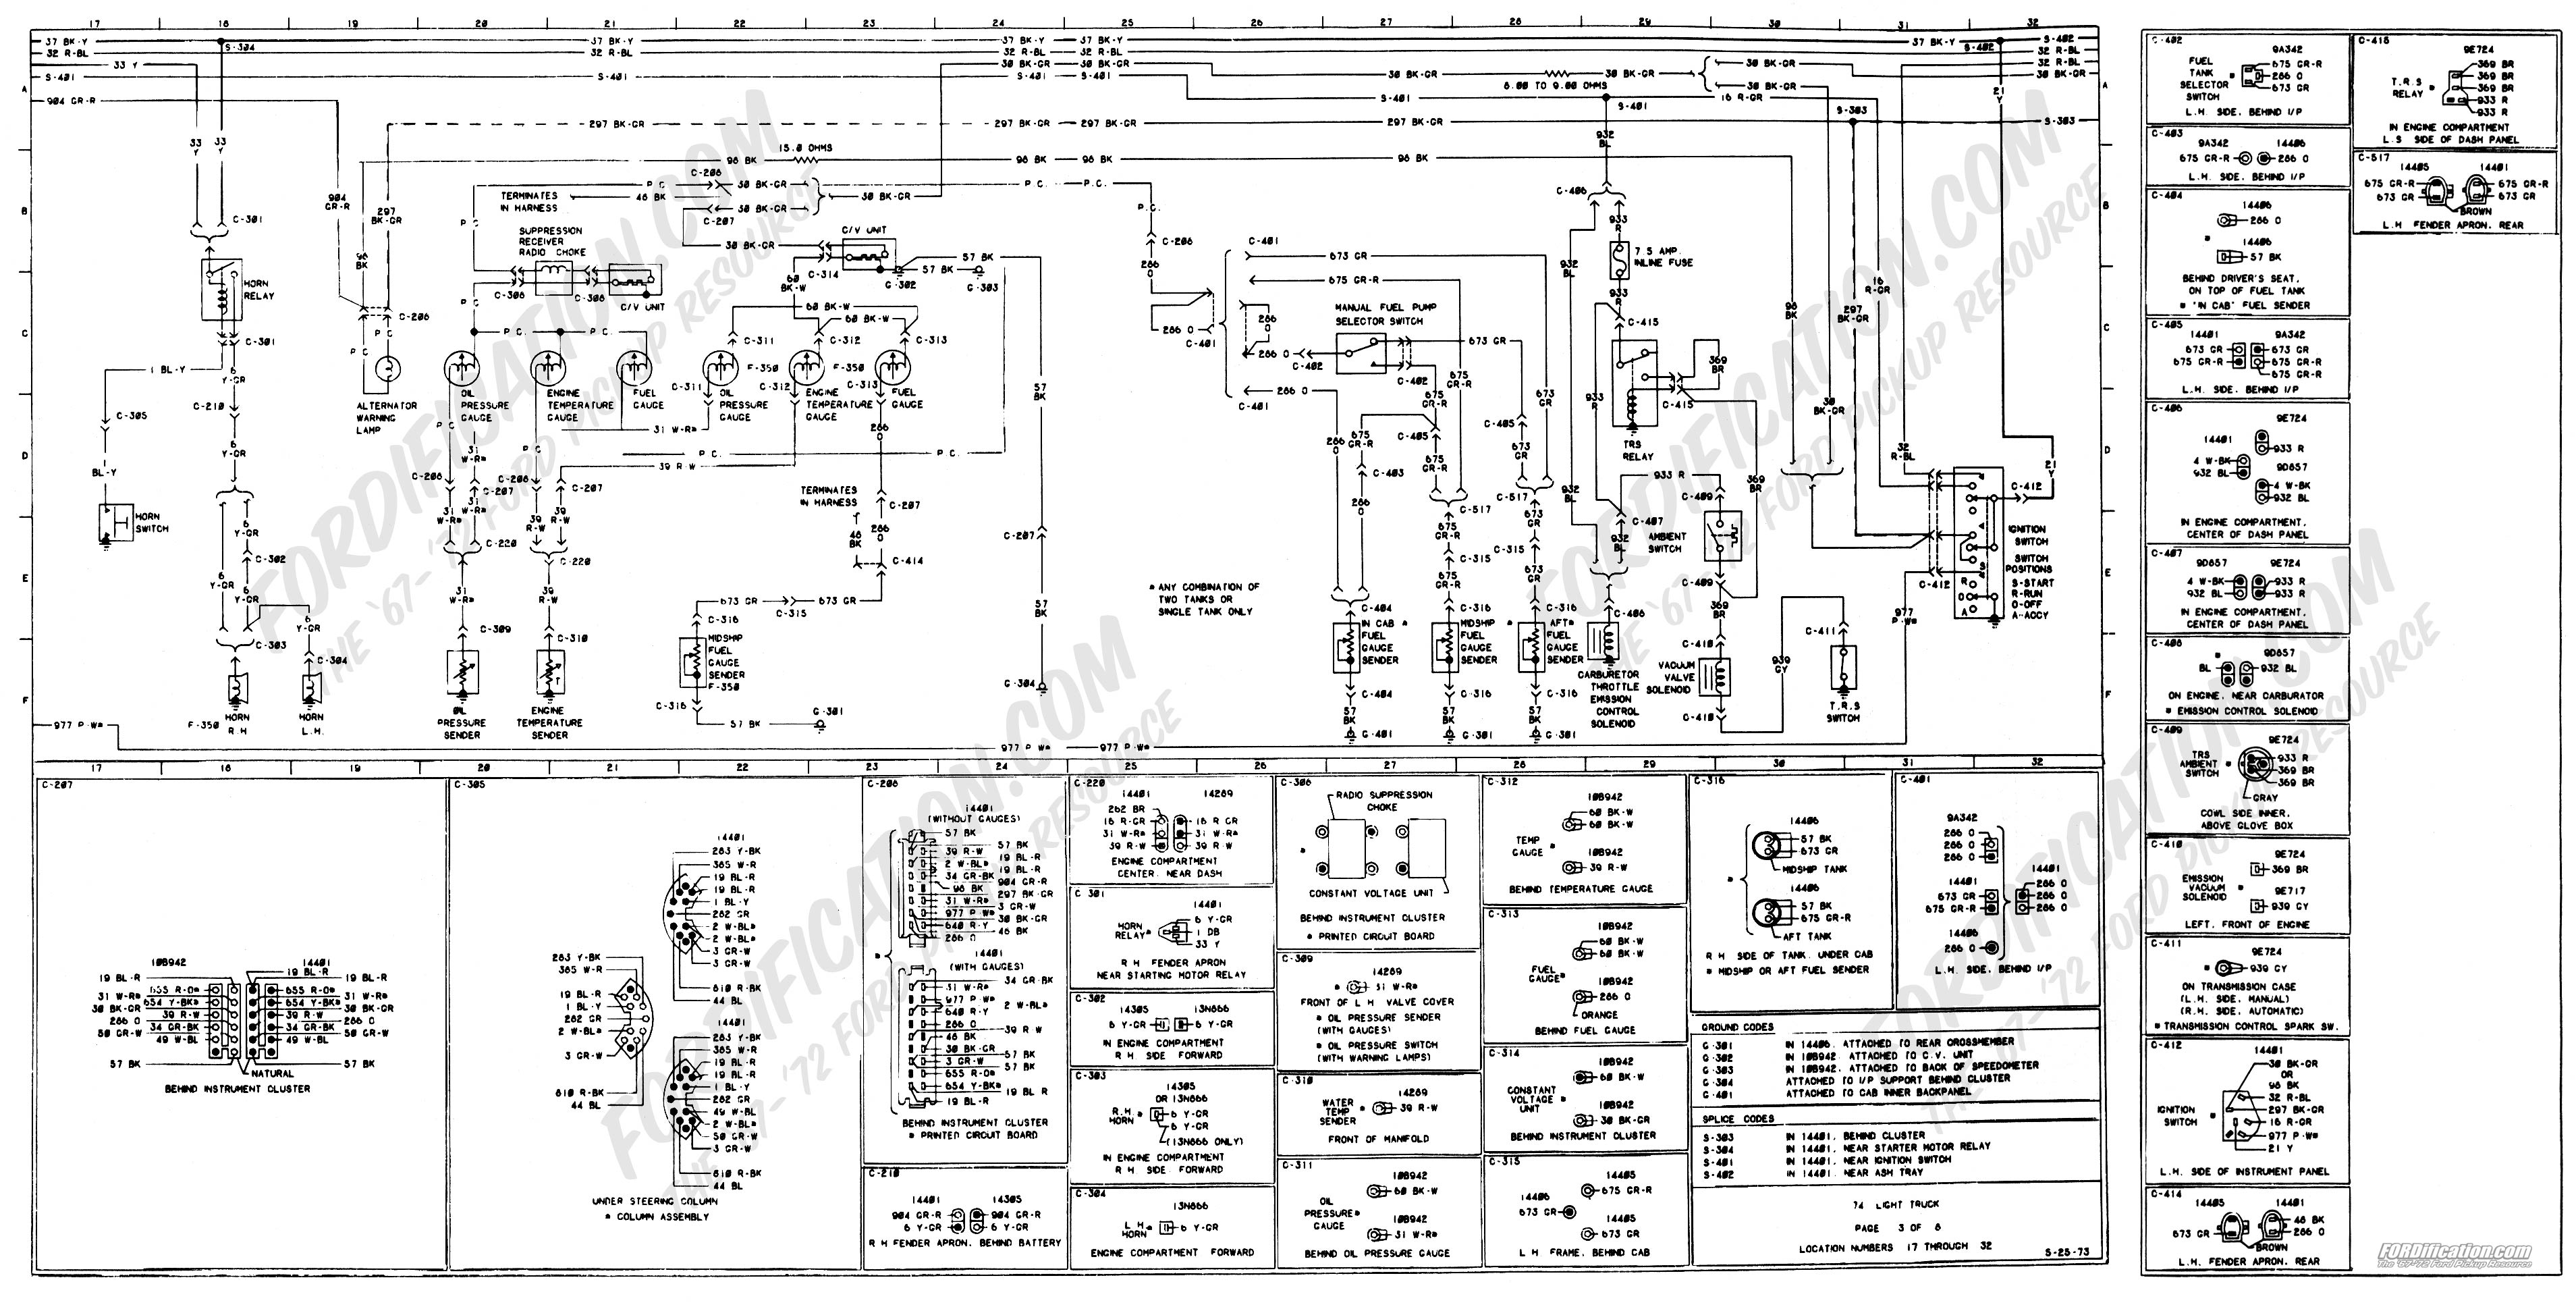 1975 f250 wiring diagram fordification smart wiring diagrams u2022 rh eclipsenetwork co ford f250 wiring diagram online ford f250 wiring diagram online